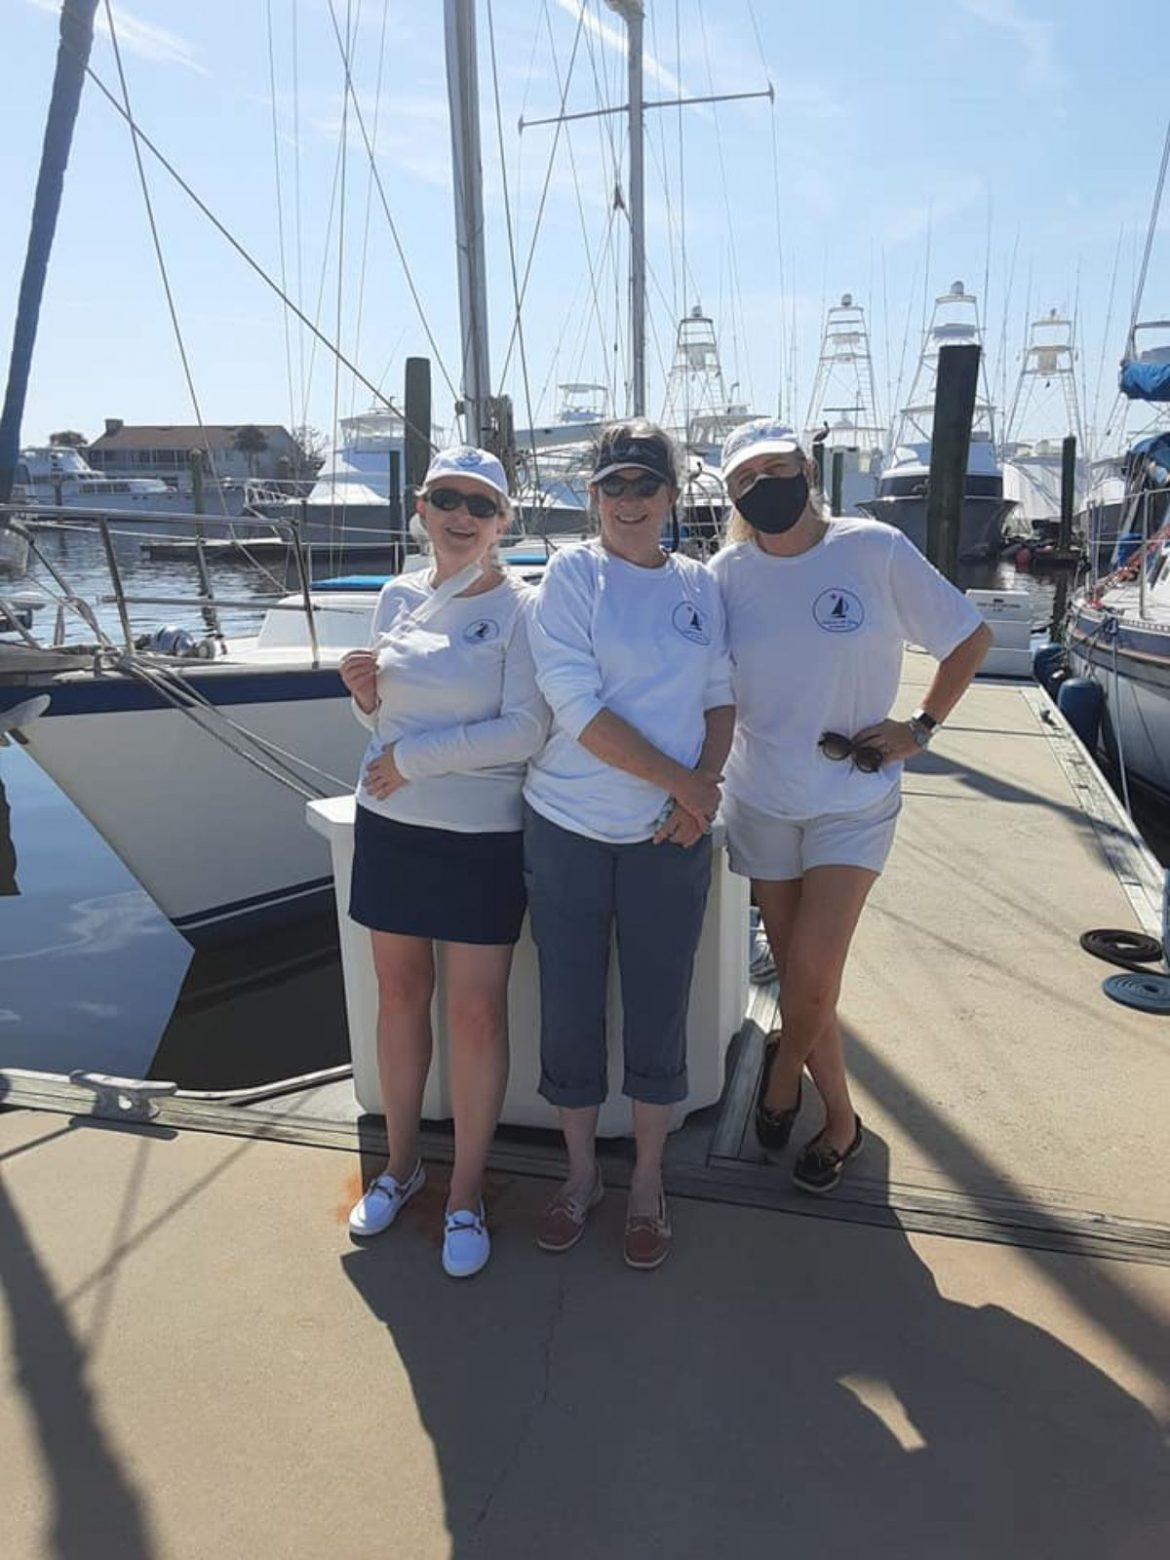 saling checklist, Your Captain's Checklist for Departing a Dock on Auxiliary Sailing Vessels